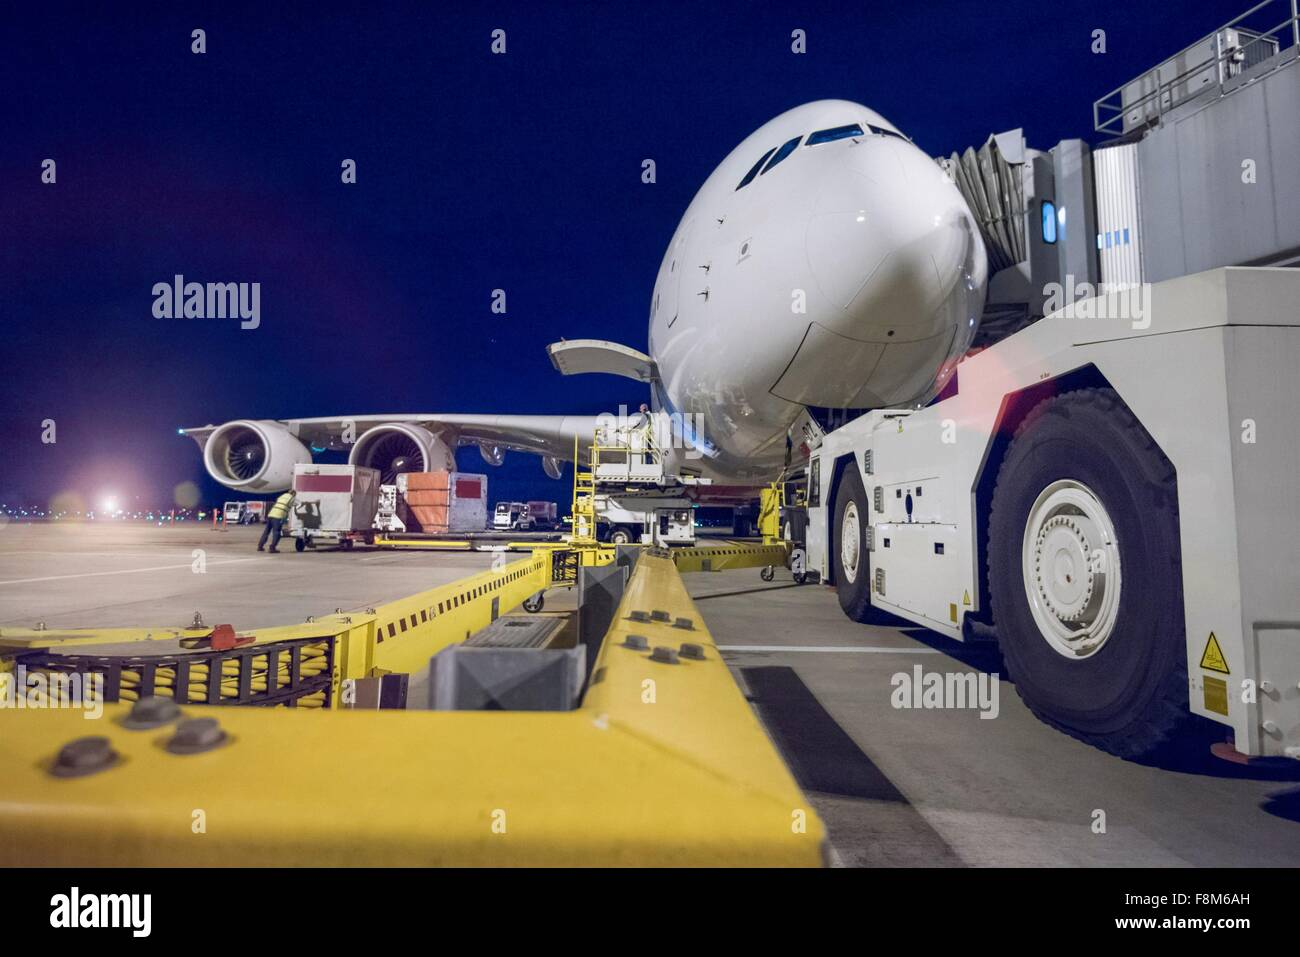 Night over A380 aircraft on stand at airport - Stock Image